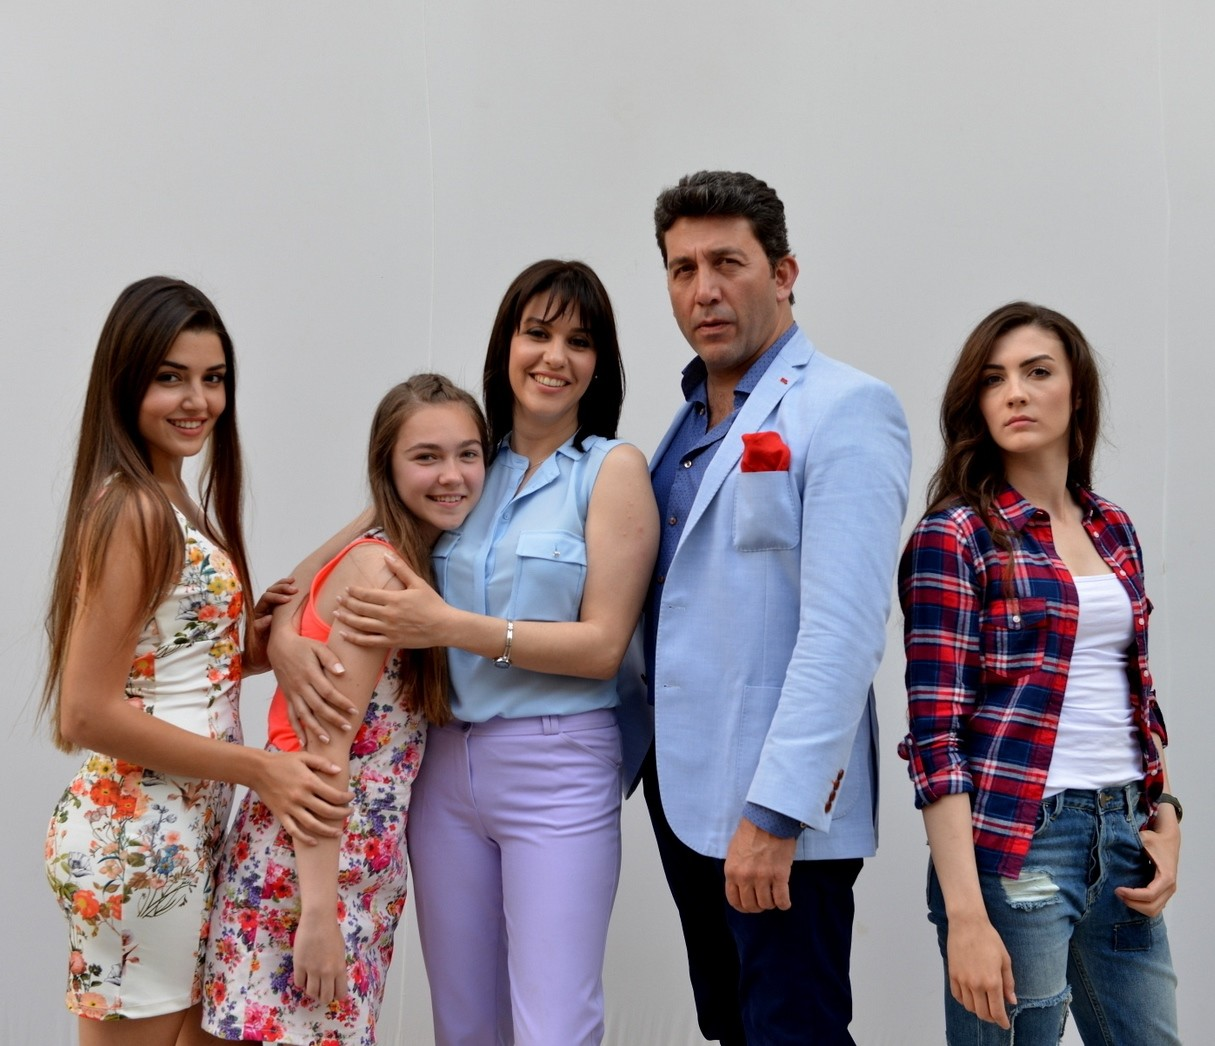 Daughters of sun - gunesin kizları tv series